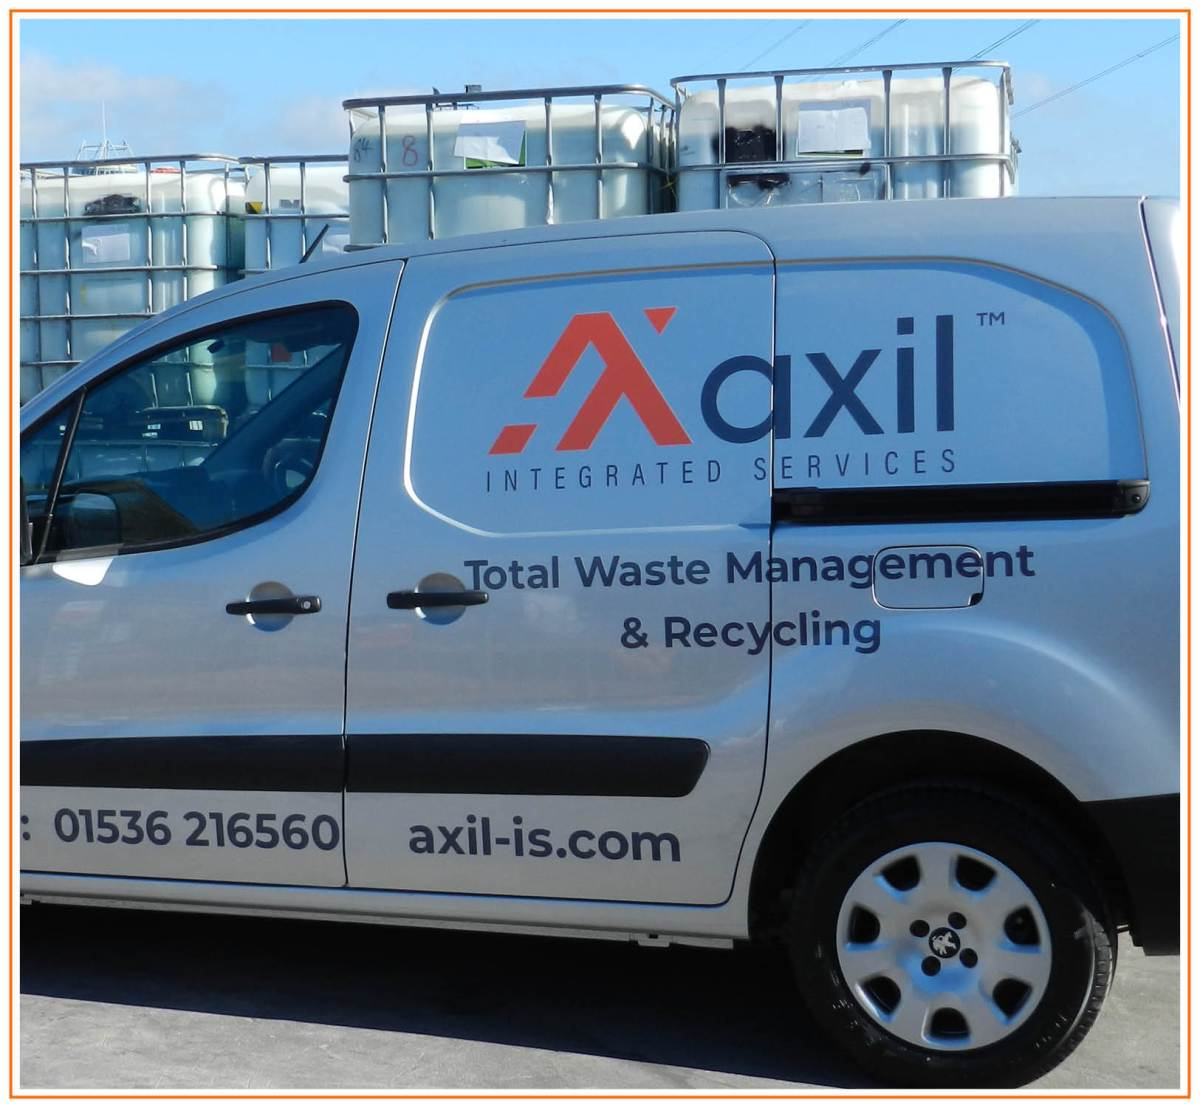 https://i2.wp.com/haultech.co.uk/wp-content/uploads/2020/12/No-Waste-Here-Axil-Integrated-Services-reduces-road-risk-with-HaulTech-2.0.jpg?fit=1200%2C1108&ssl=1